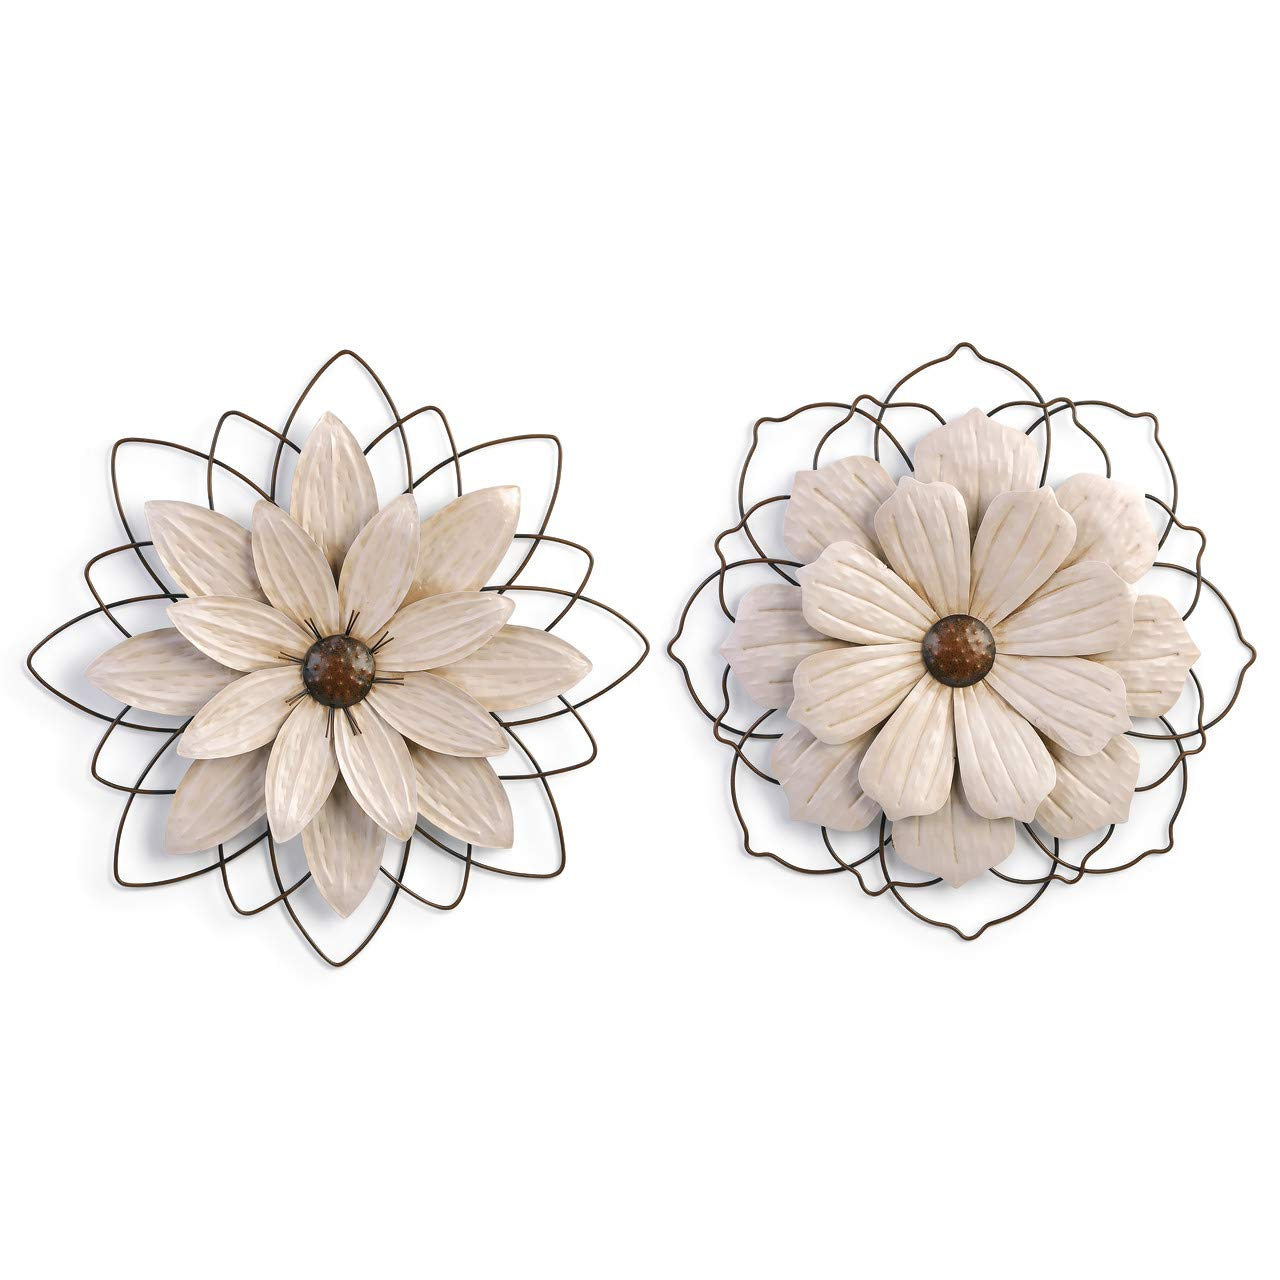 DEMDACO Flower Off White 23 x 23 Iron Metal Decorative Wall Sculpture Plaques Set of 2